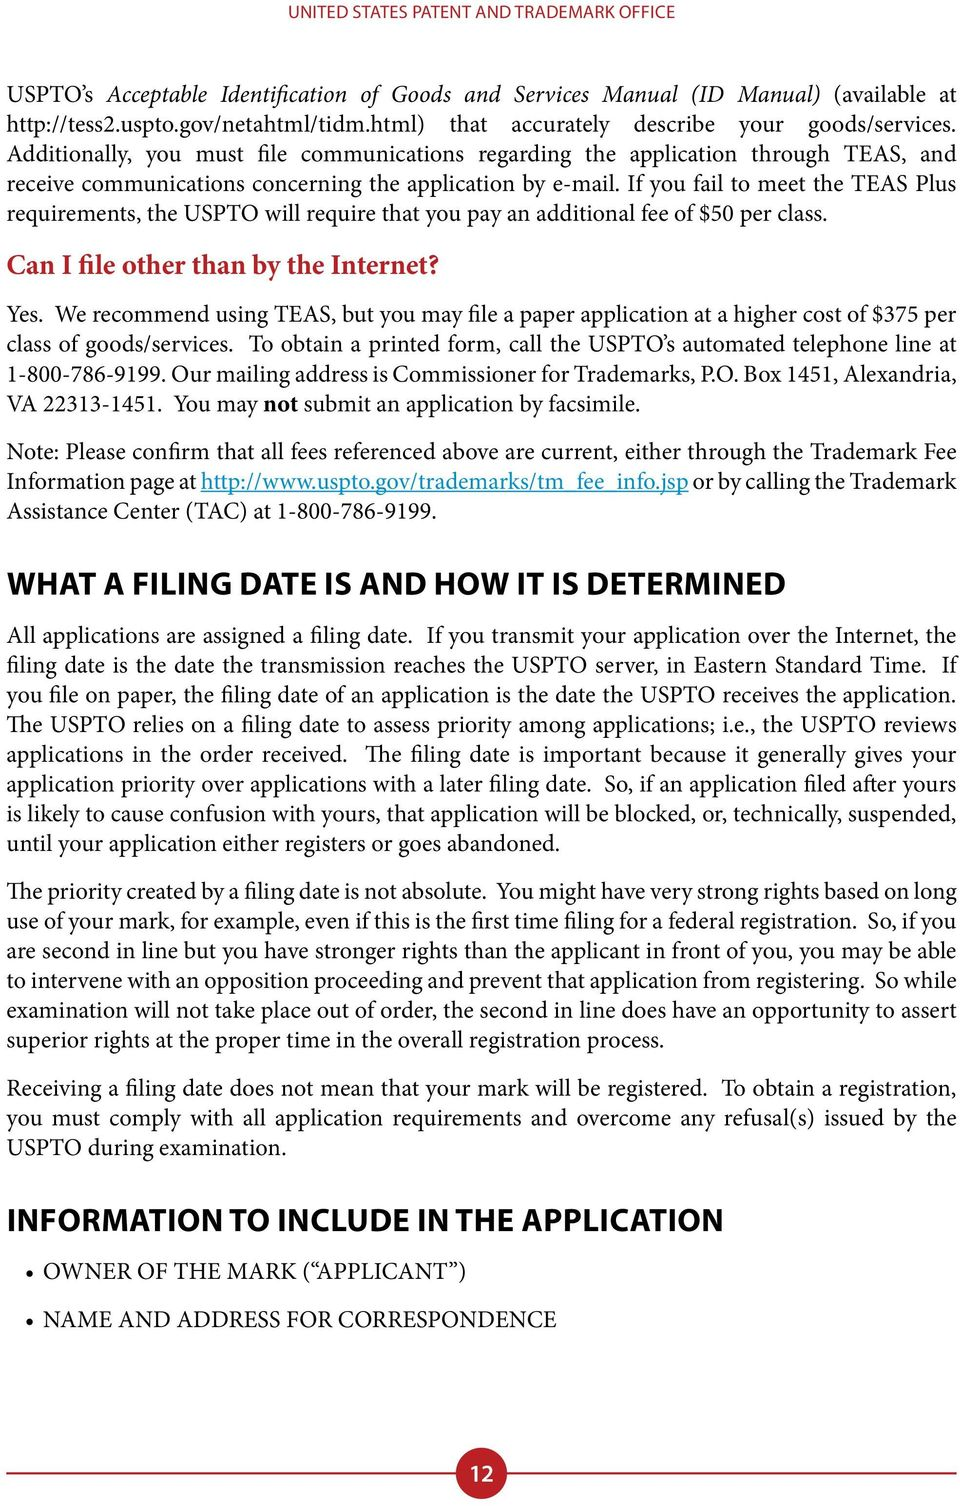 If you fail to meet the TEAS Plus requirements, the USPTO will require that you pay an additional fee of $50 per class. Can I file other than by the Internet? Yes.